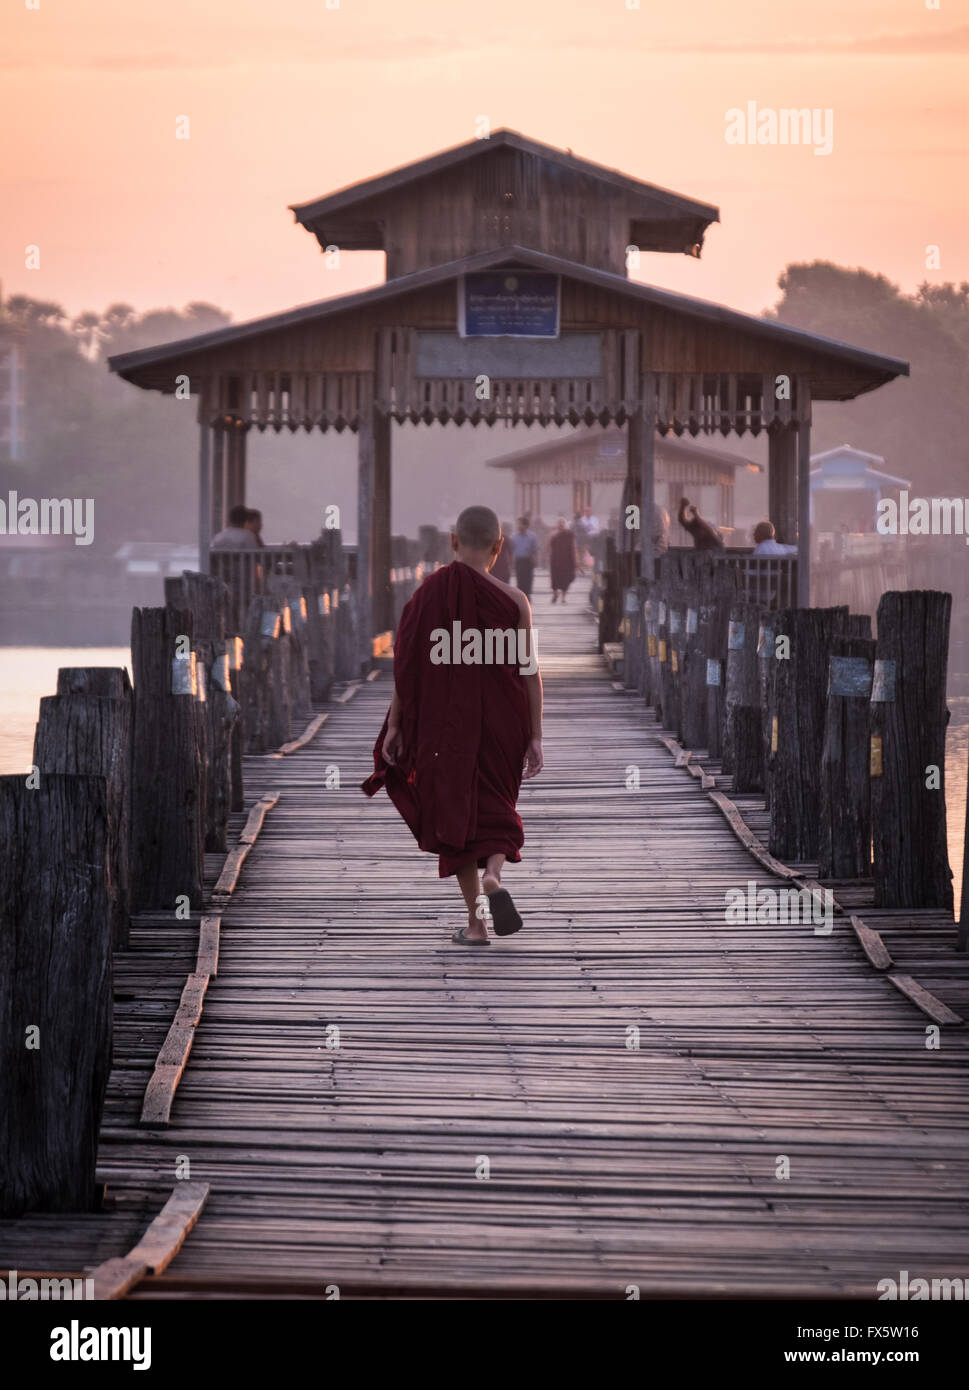 A Novice walking across U Bein's Bridge at dawn - Stock Image